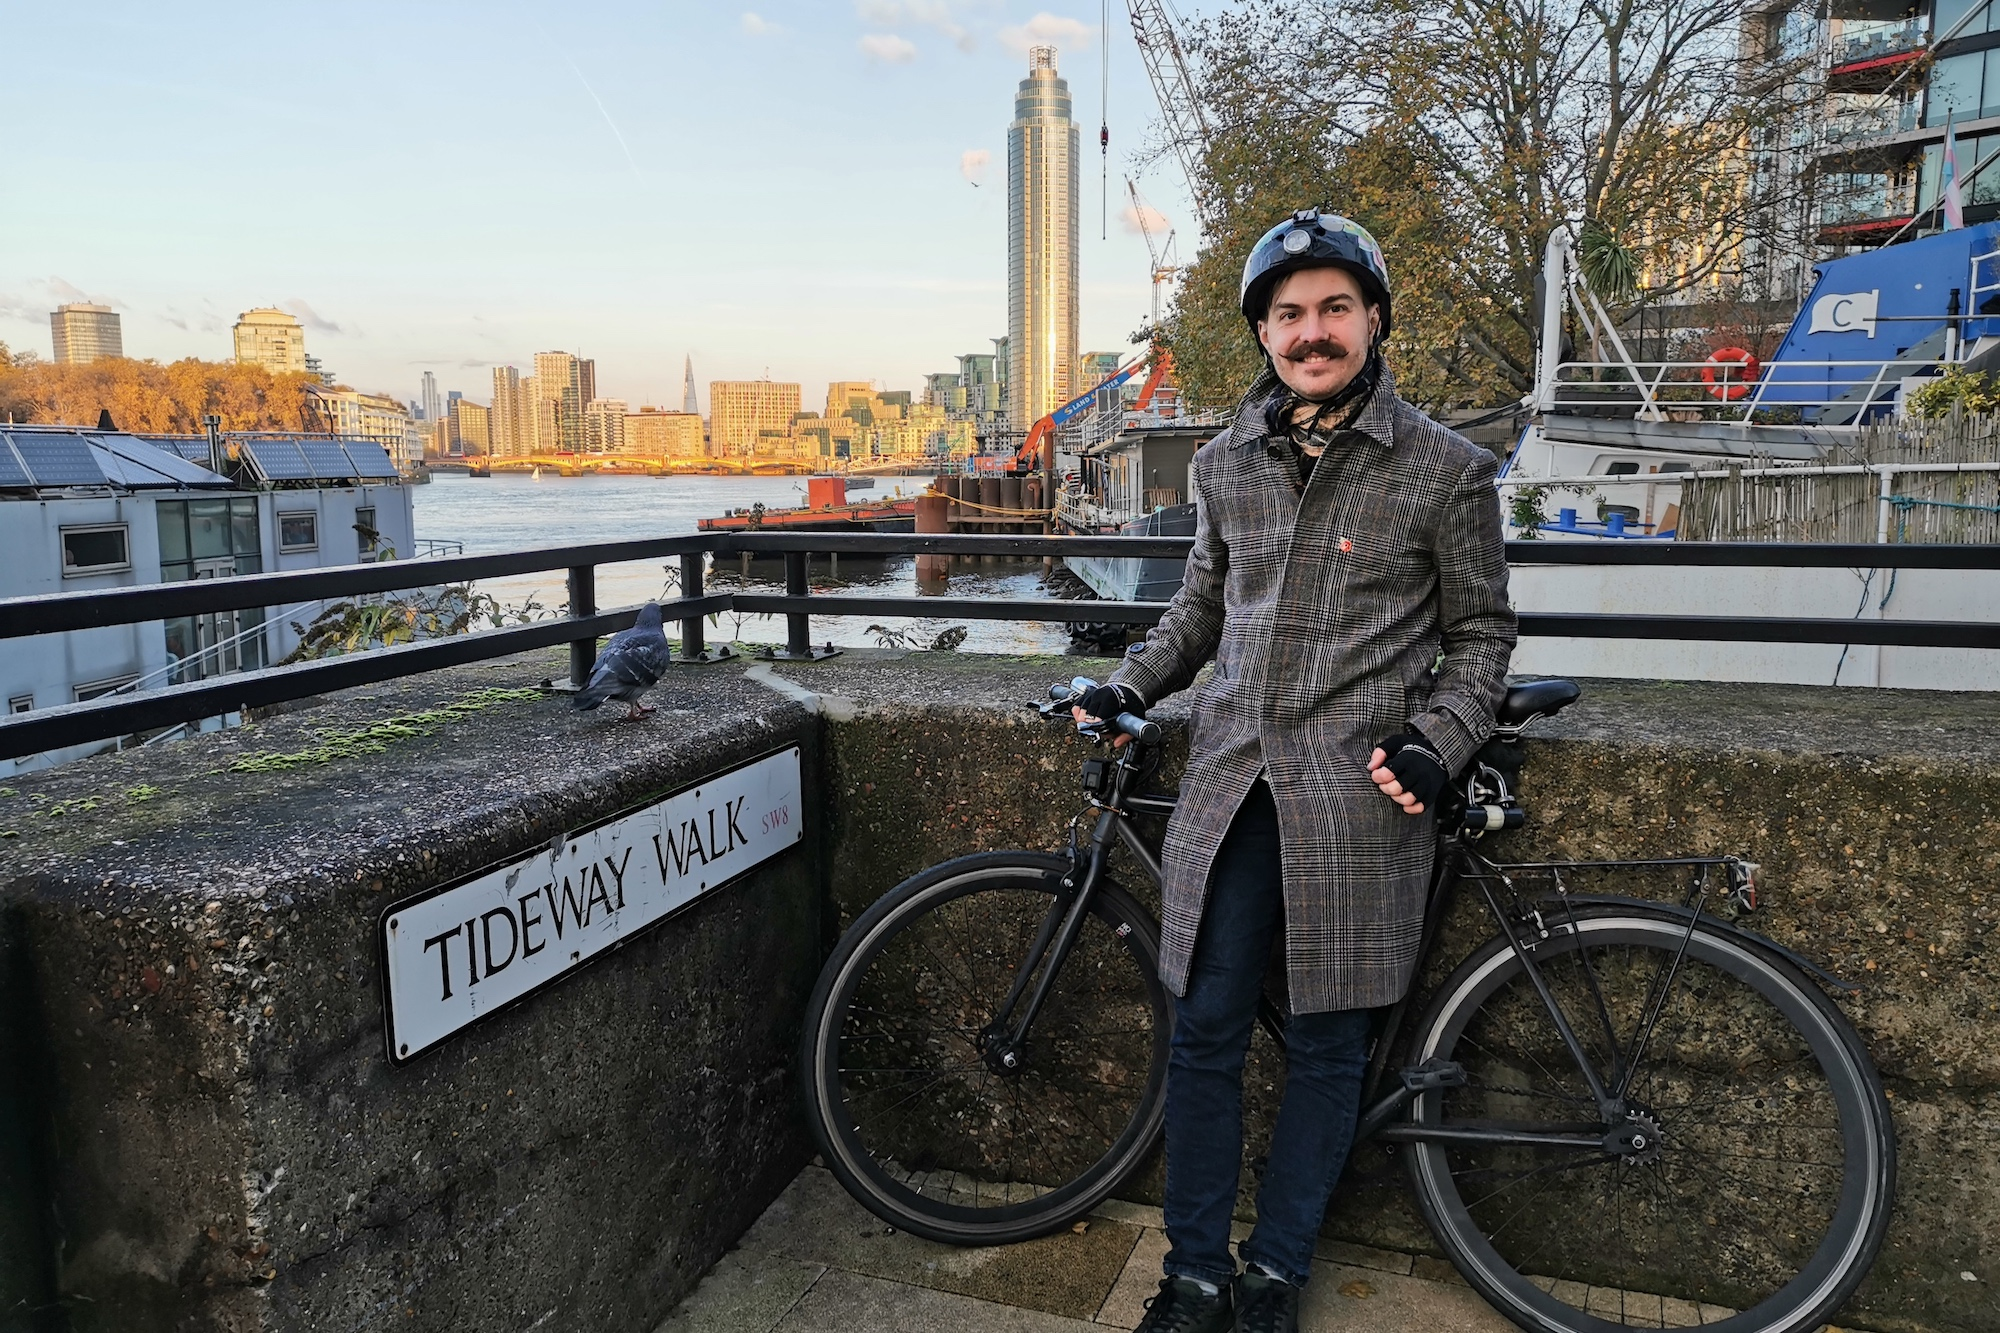 Cyclist spends five years riding every street in central London